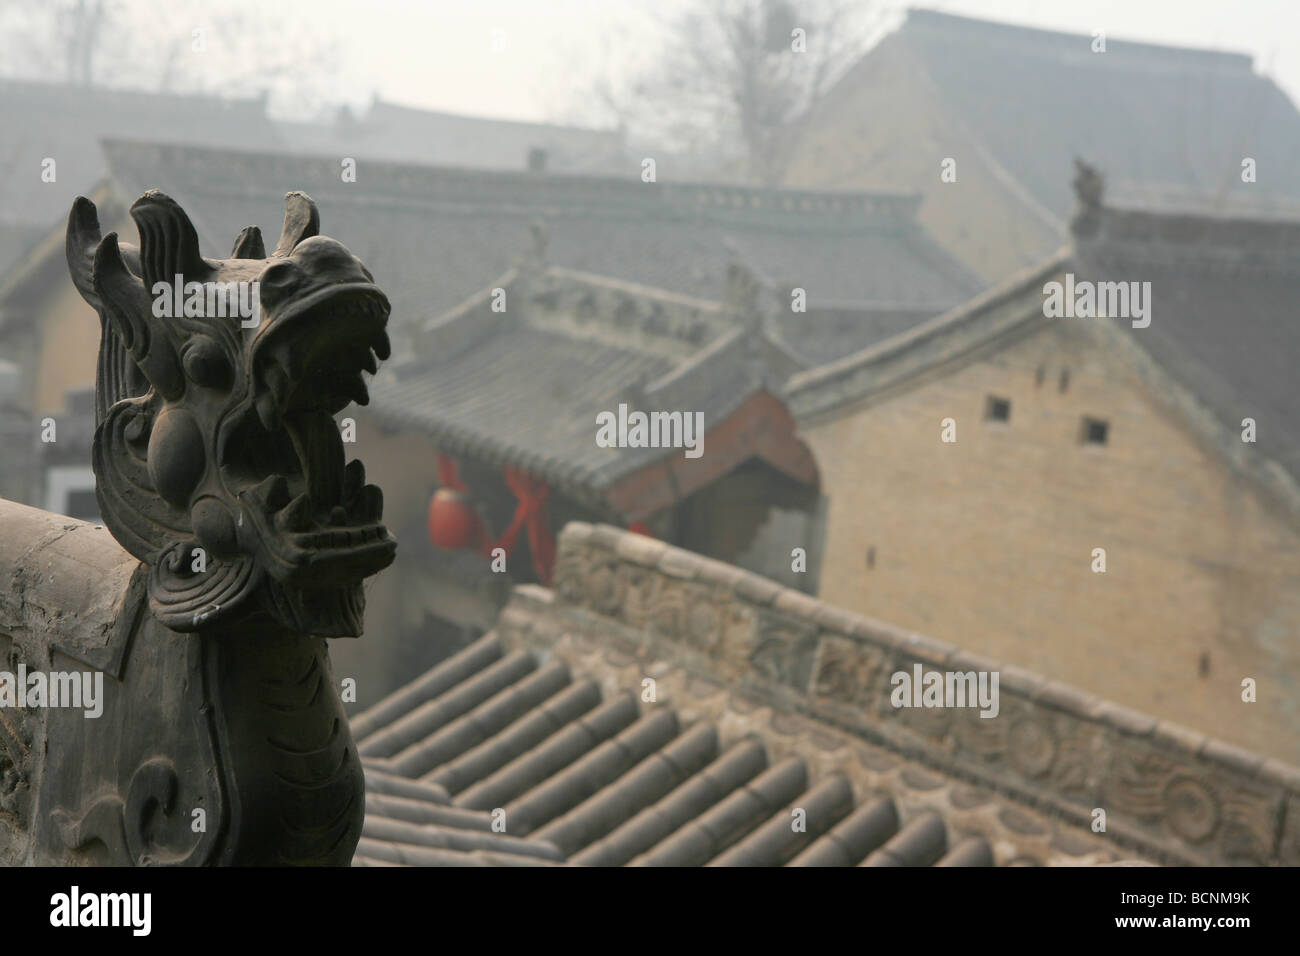 View of the courtyards of Qing Dynasty dwelling house, Ding Village, Linfen County, Shanxi Province, China - Stock Image